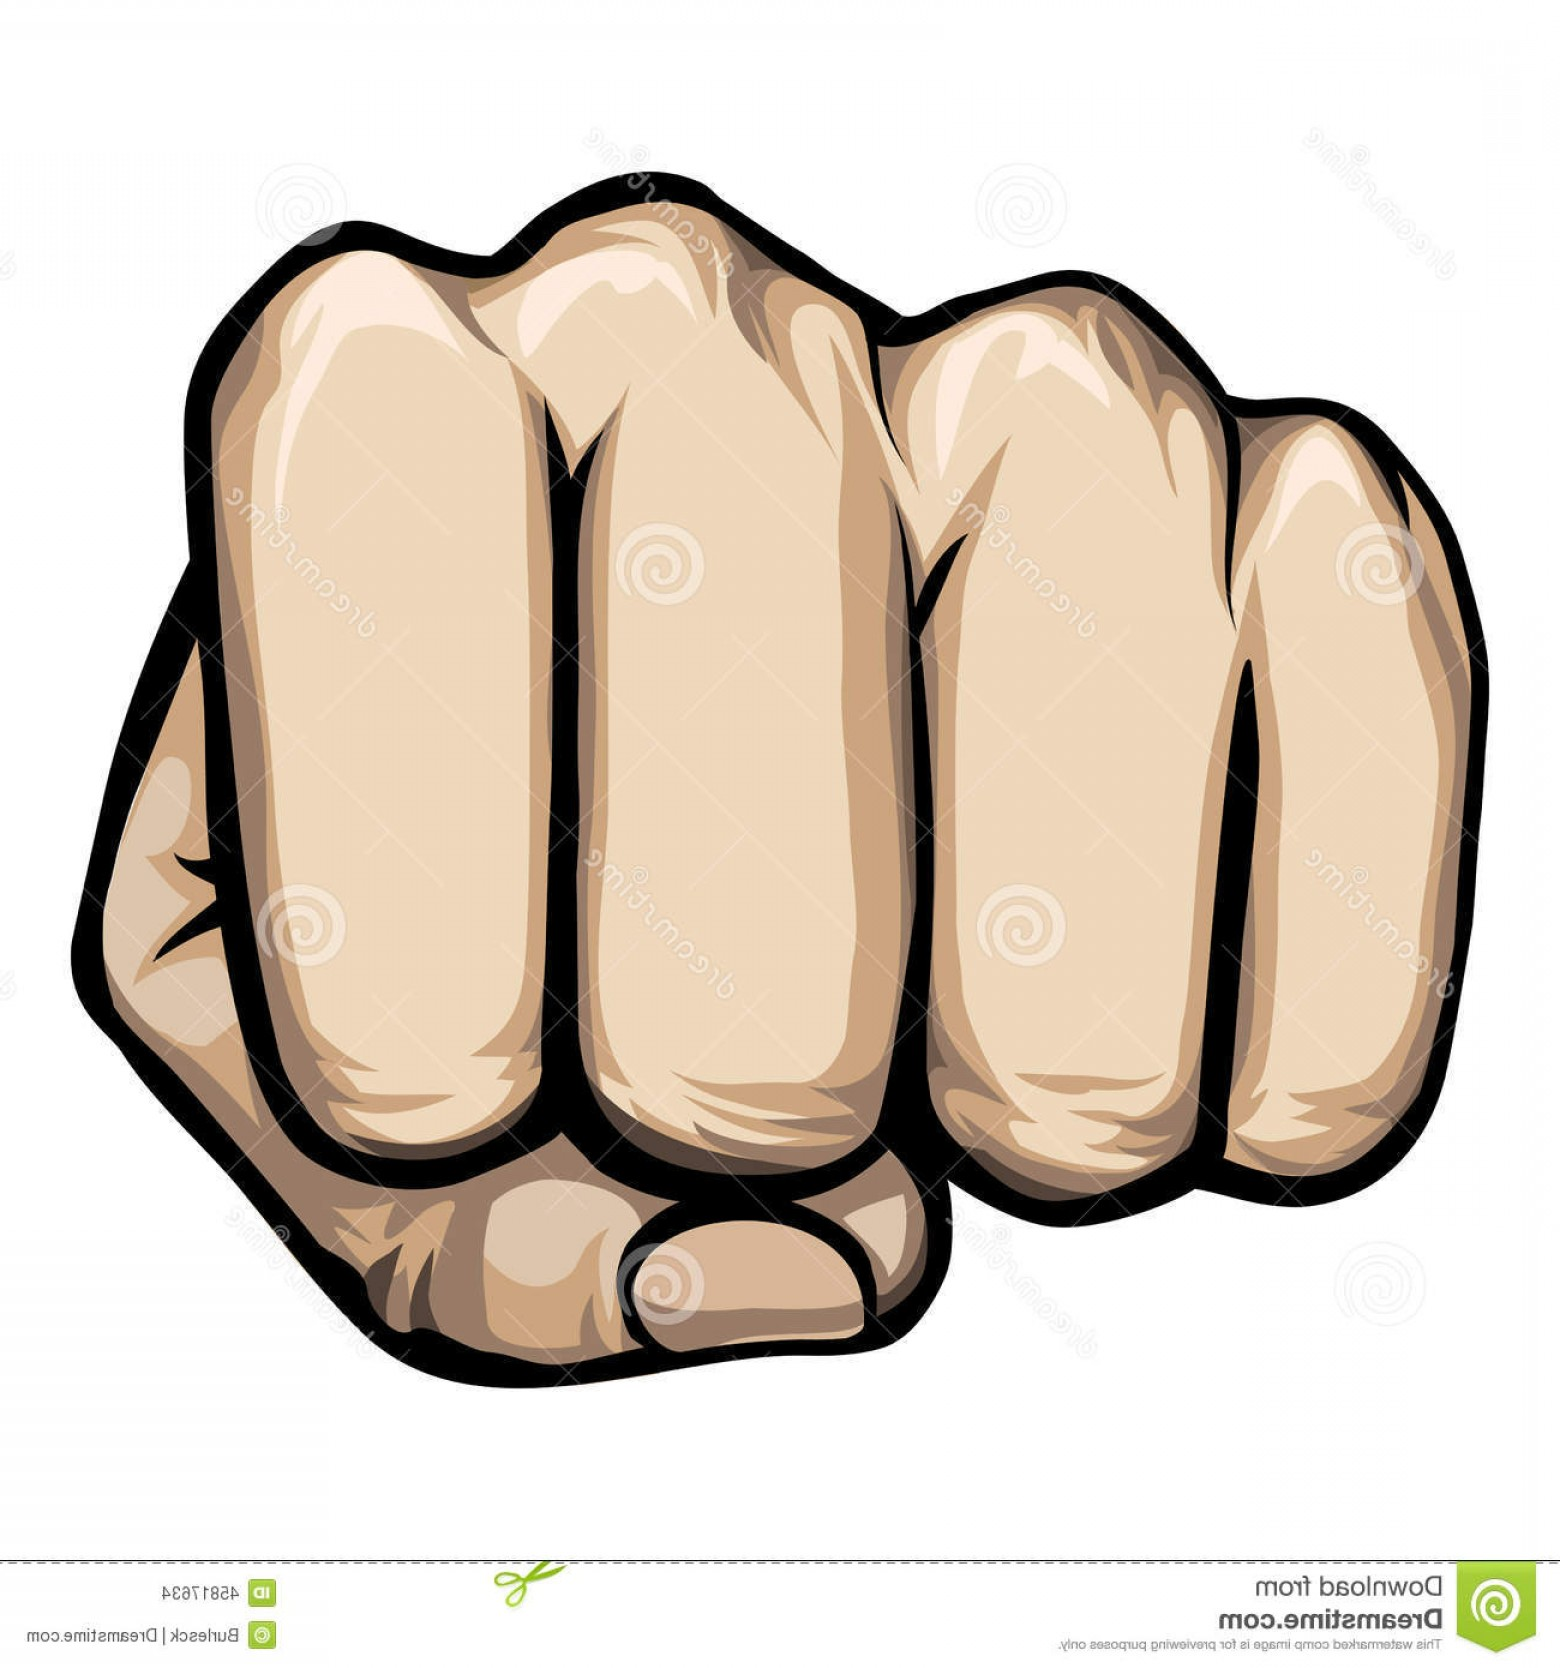 Hand Fist Vector: Stock Illustration Vector Punching Hand Colored Clenched Fist Aimed Directly Viewer White Image